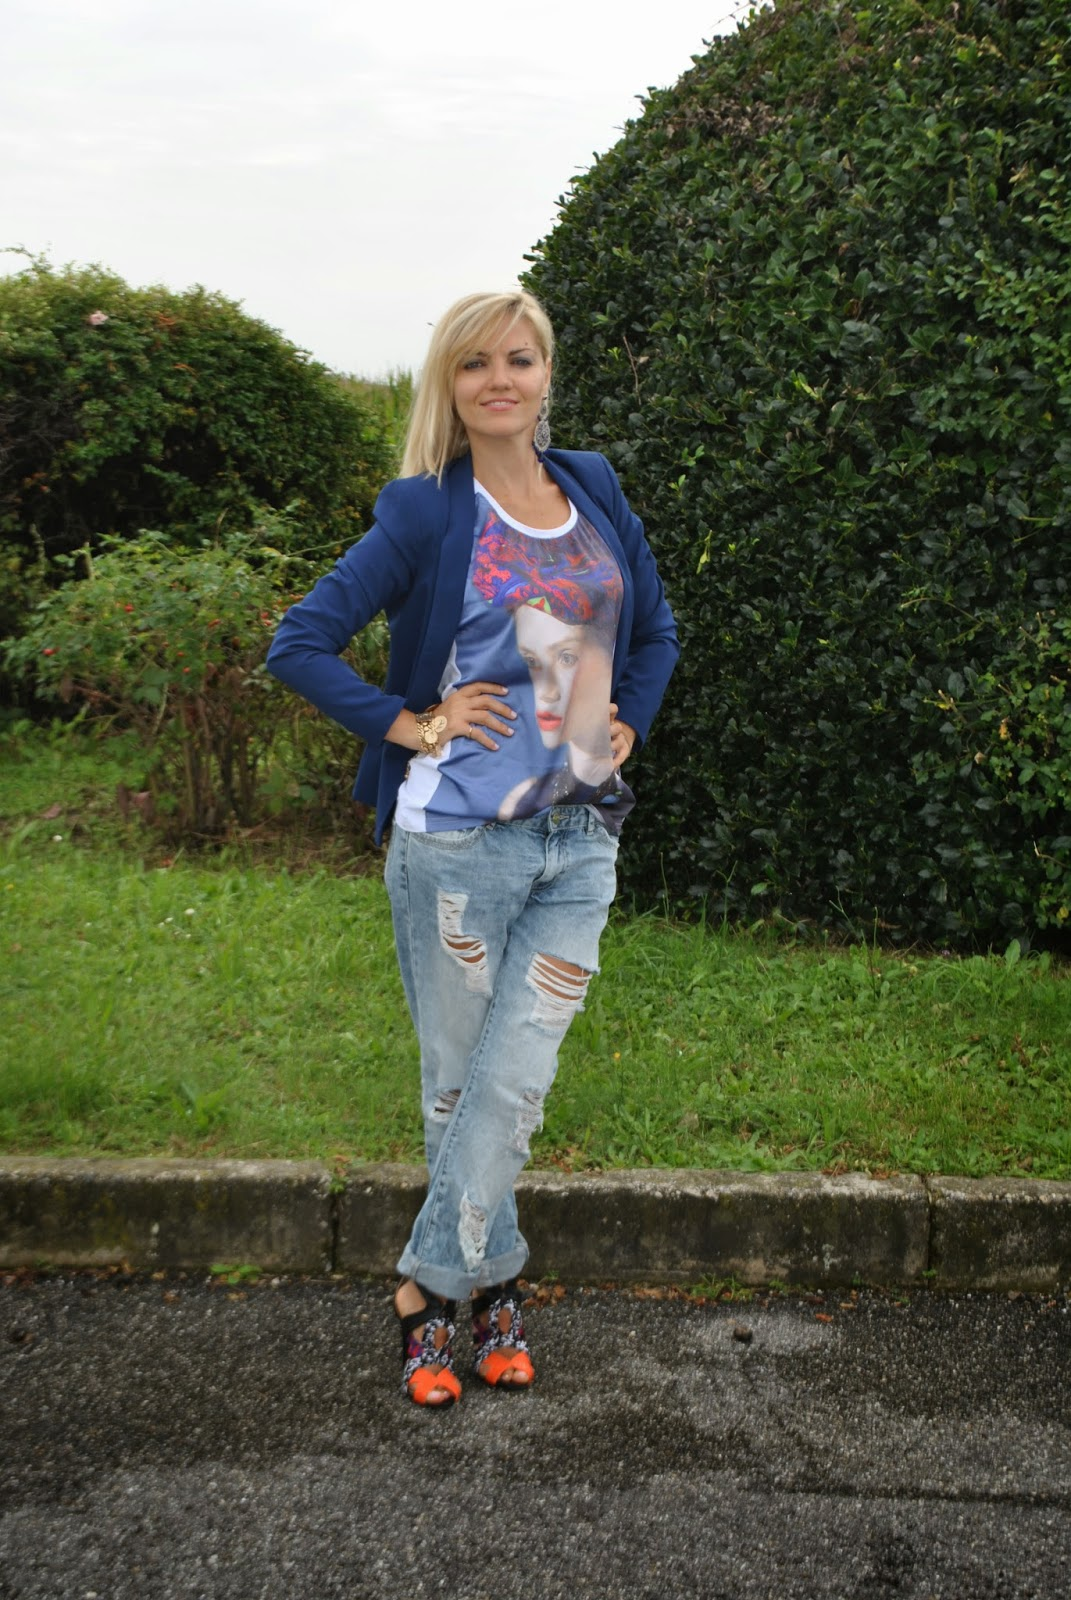 outfit boyfriend jeans destroyed blazer e tacchi outfit jeans e tacchi outfit blazer outfit blazer blu outfit canotta stampata outfit bracciale monete d'oro outfit estivi outfit estate 2014 outfit agosto 2014 outfit di mariafelicia magno fashion blogger di colorblock by felym abbinamenti boyfriend jeans come abbinare i boyfriend jeans how to wear boyfriend jeans how to wear blazer majique london fashion blogger bionde fashion blogger italiane fashion blogger milano colorblock by felym sandali pimkie fblogger lookbook streetstyle borsa bianca blumarine